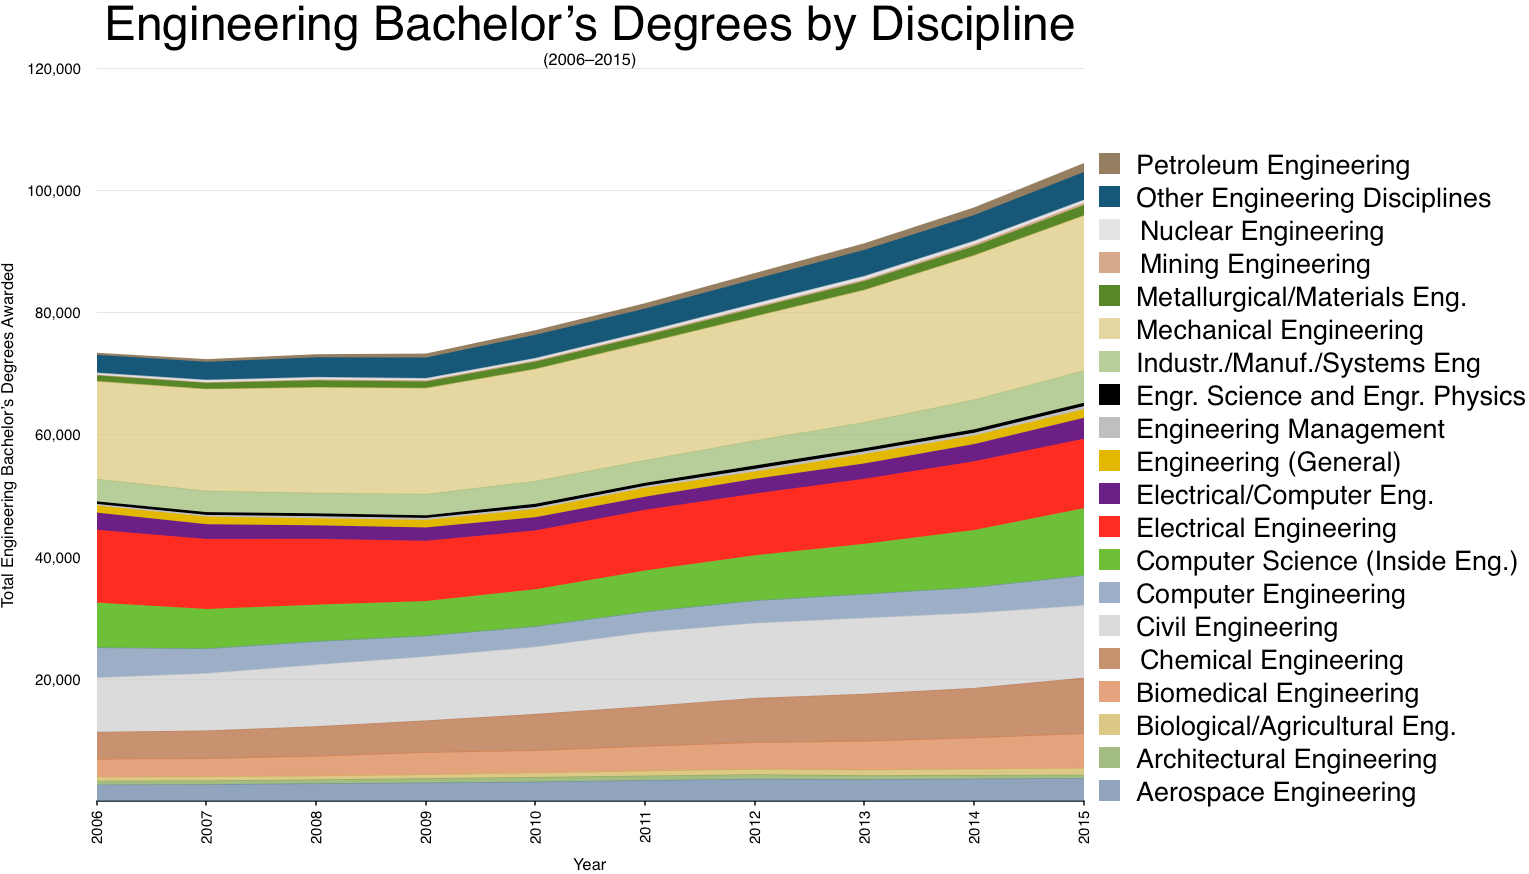 hight resolution of engineering bachelor s degrees by discipline 2016 2015